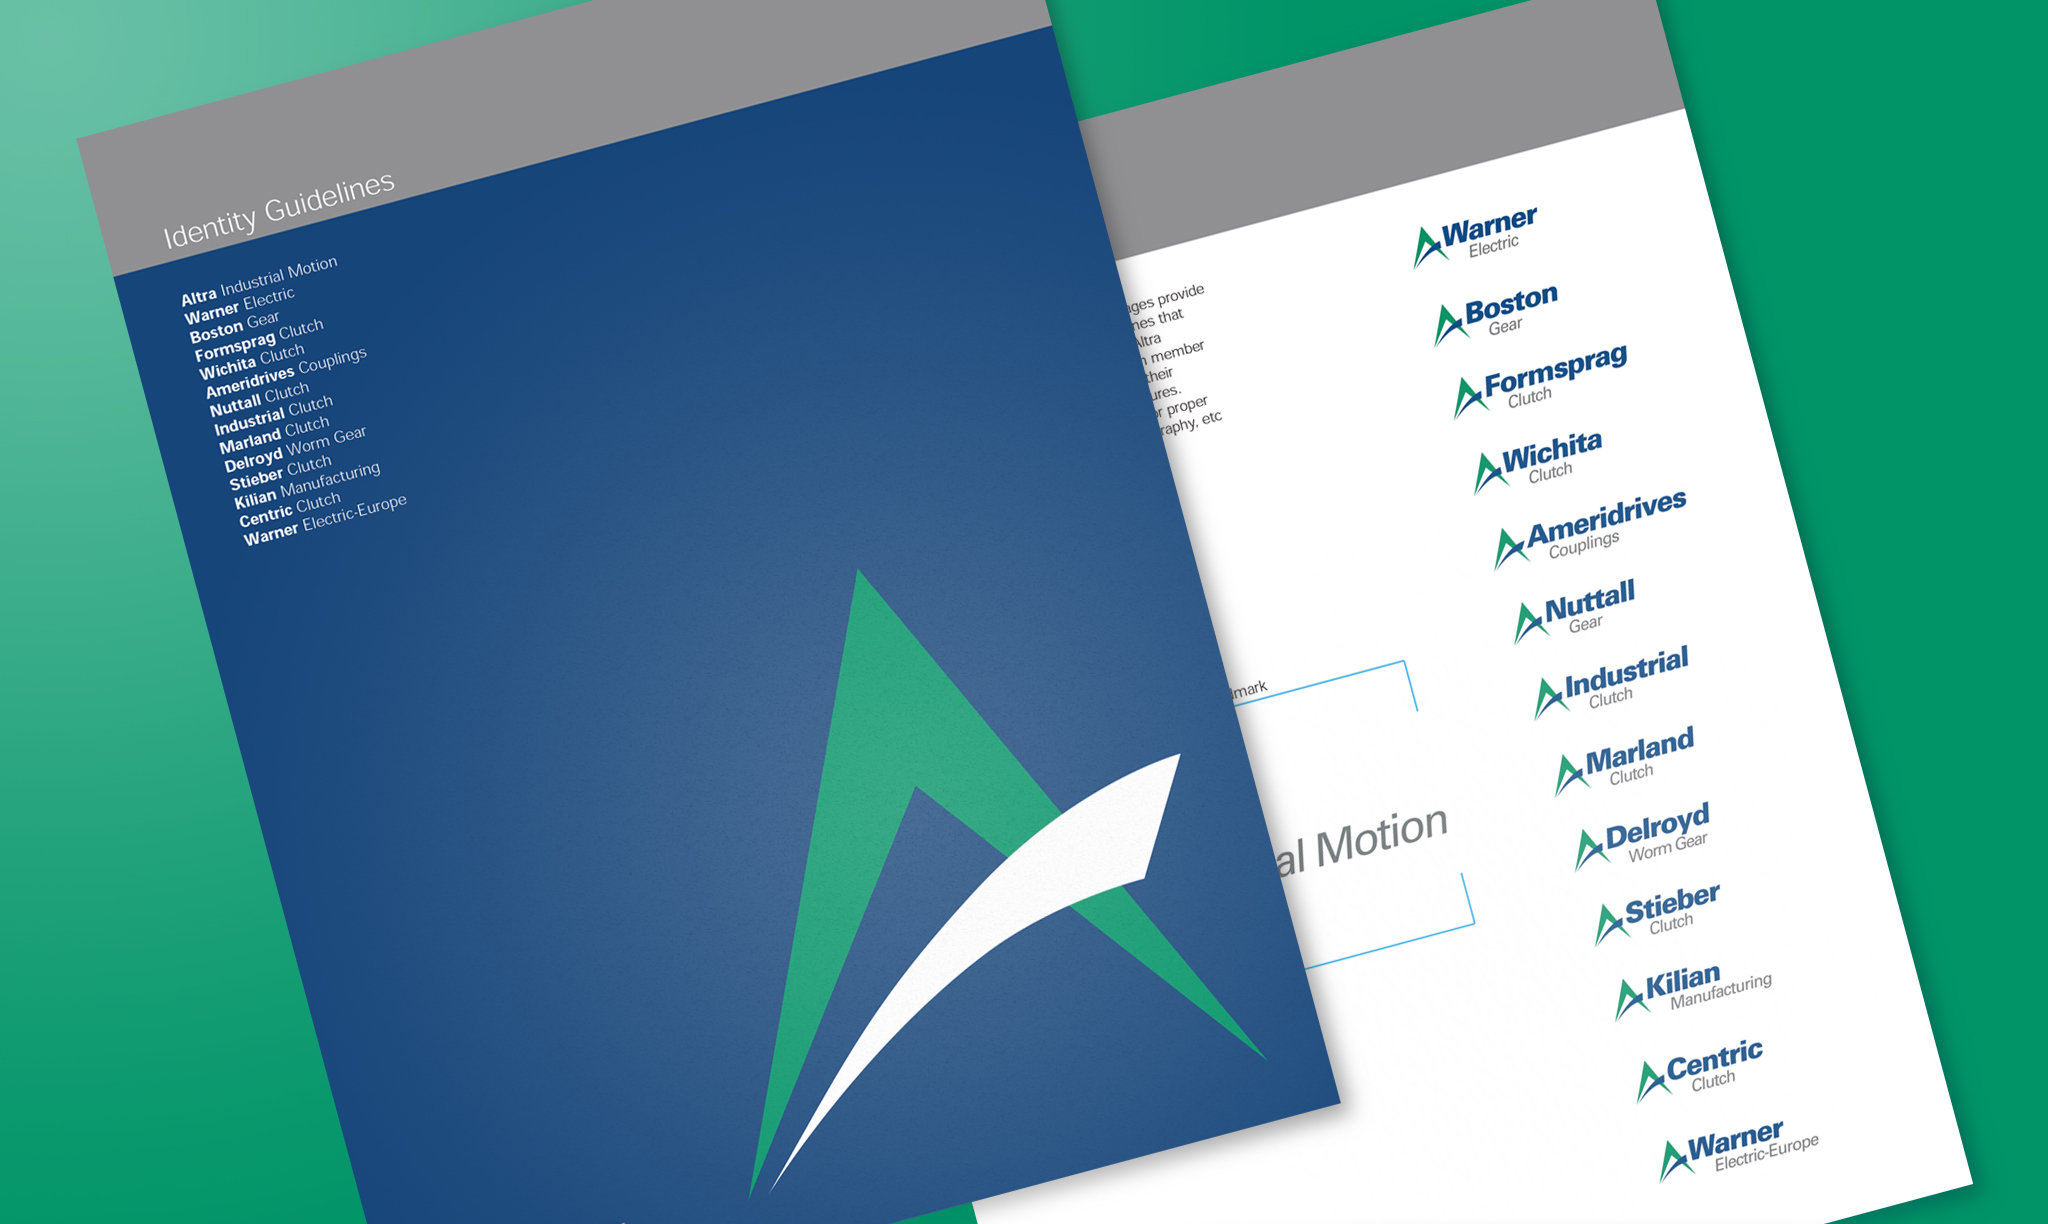 Altra Identity Guidelines